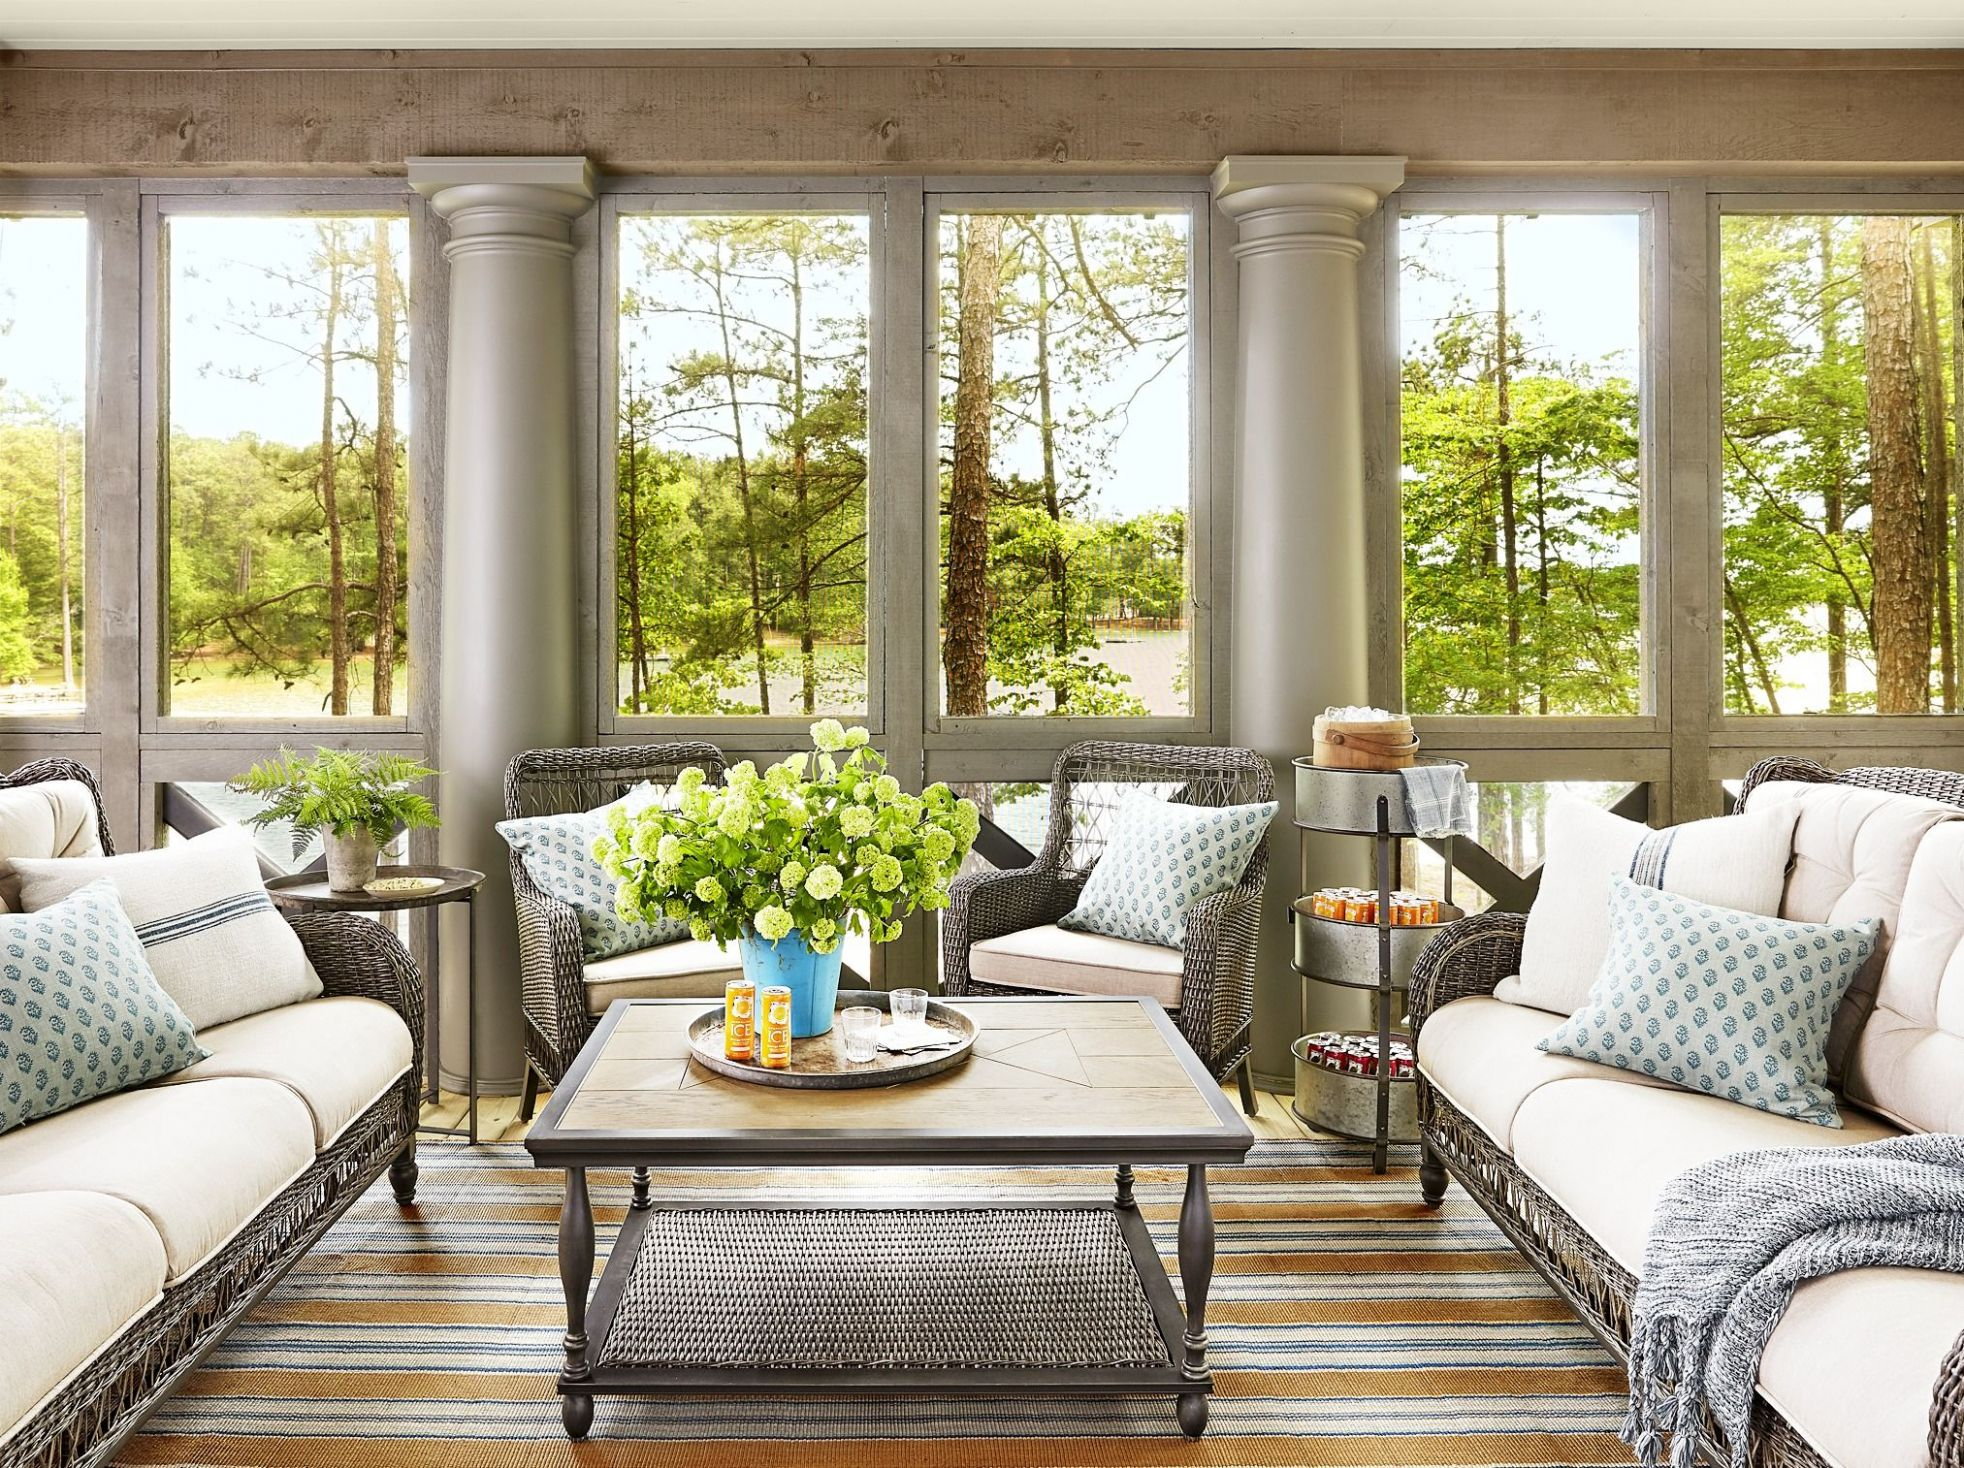 9 Sunroom Decorating Ideas - Best Designs for Sun Rooms - sunroom ideas modern